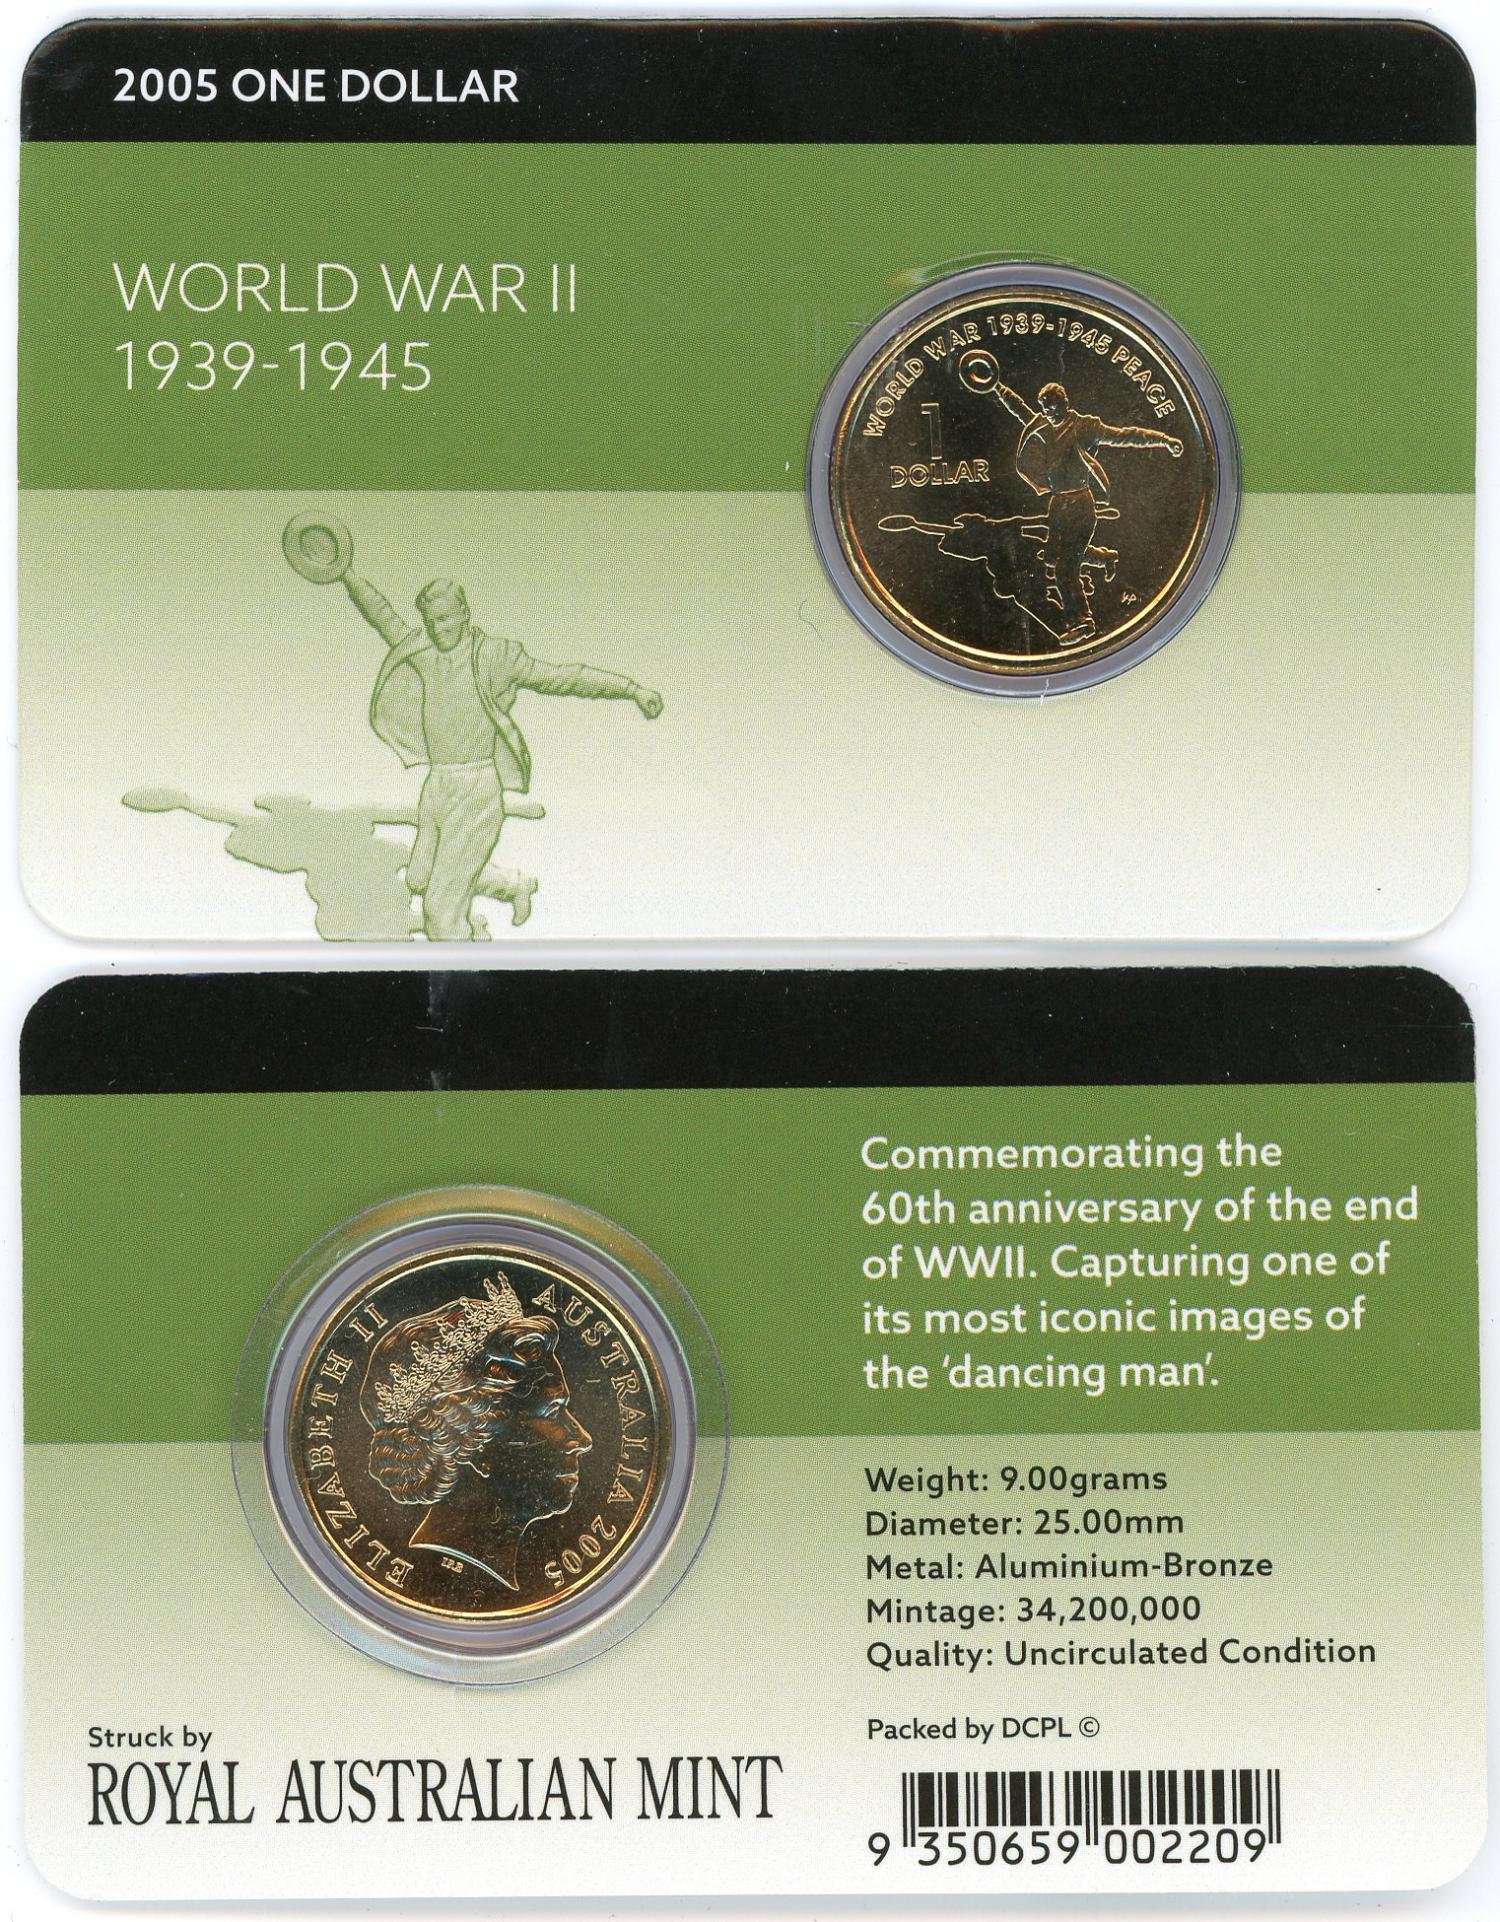 Thumbnail for 2005 $1 Commemorating 60th Anniversary of the End WWII